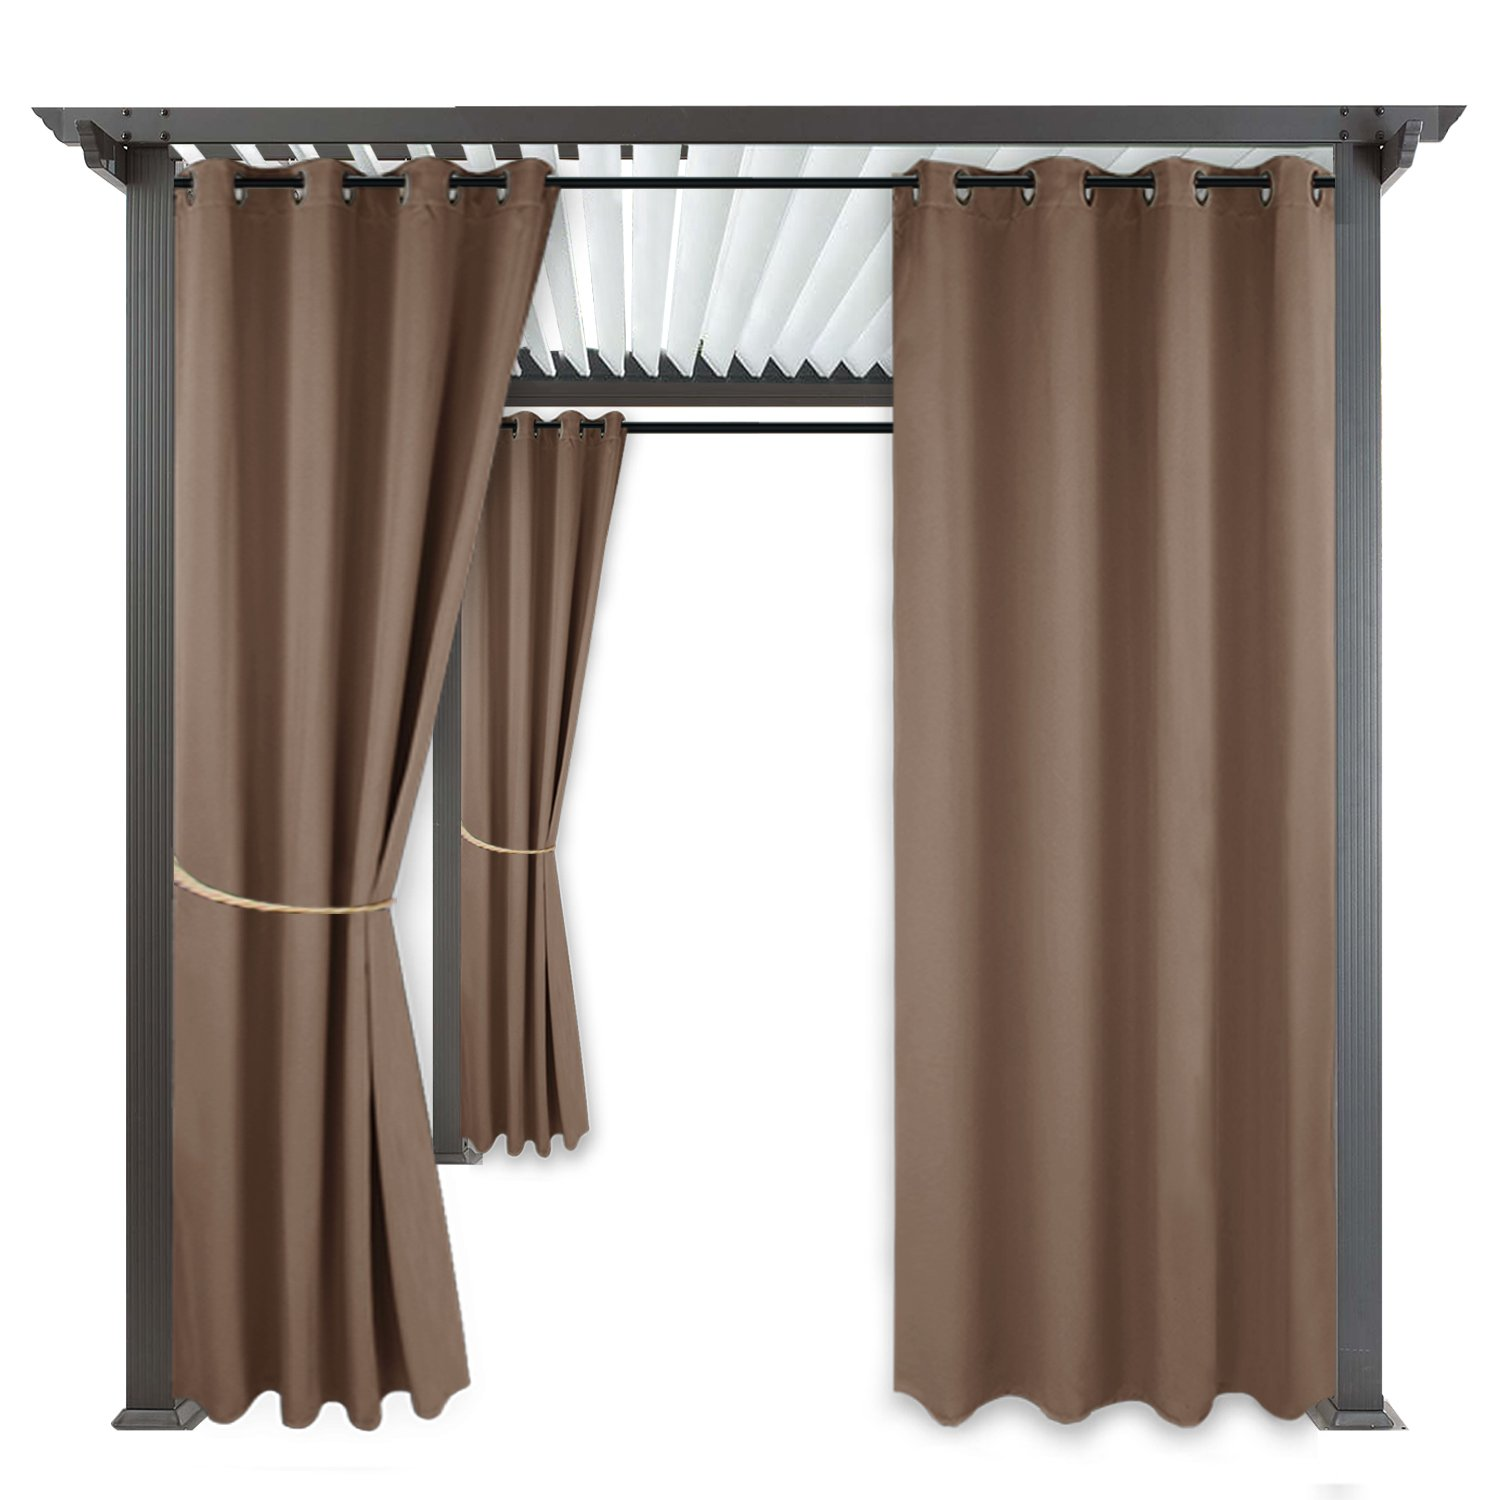 RYB HOME Balcony Curtains Outdoor - Free Standing Outdoor Privacy Curtain Exterior/Outside Curtains for Patio Light Block Heat Out Water Proof Drape, Single Panel, W 52 by L 108'', Mocha